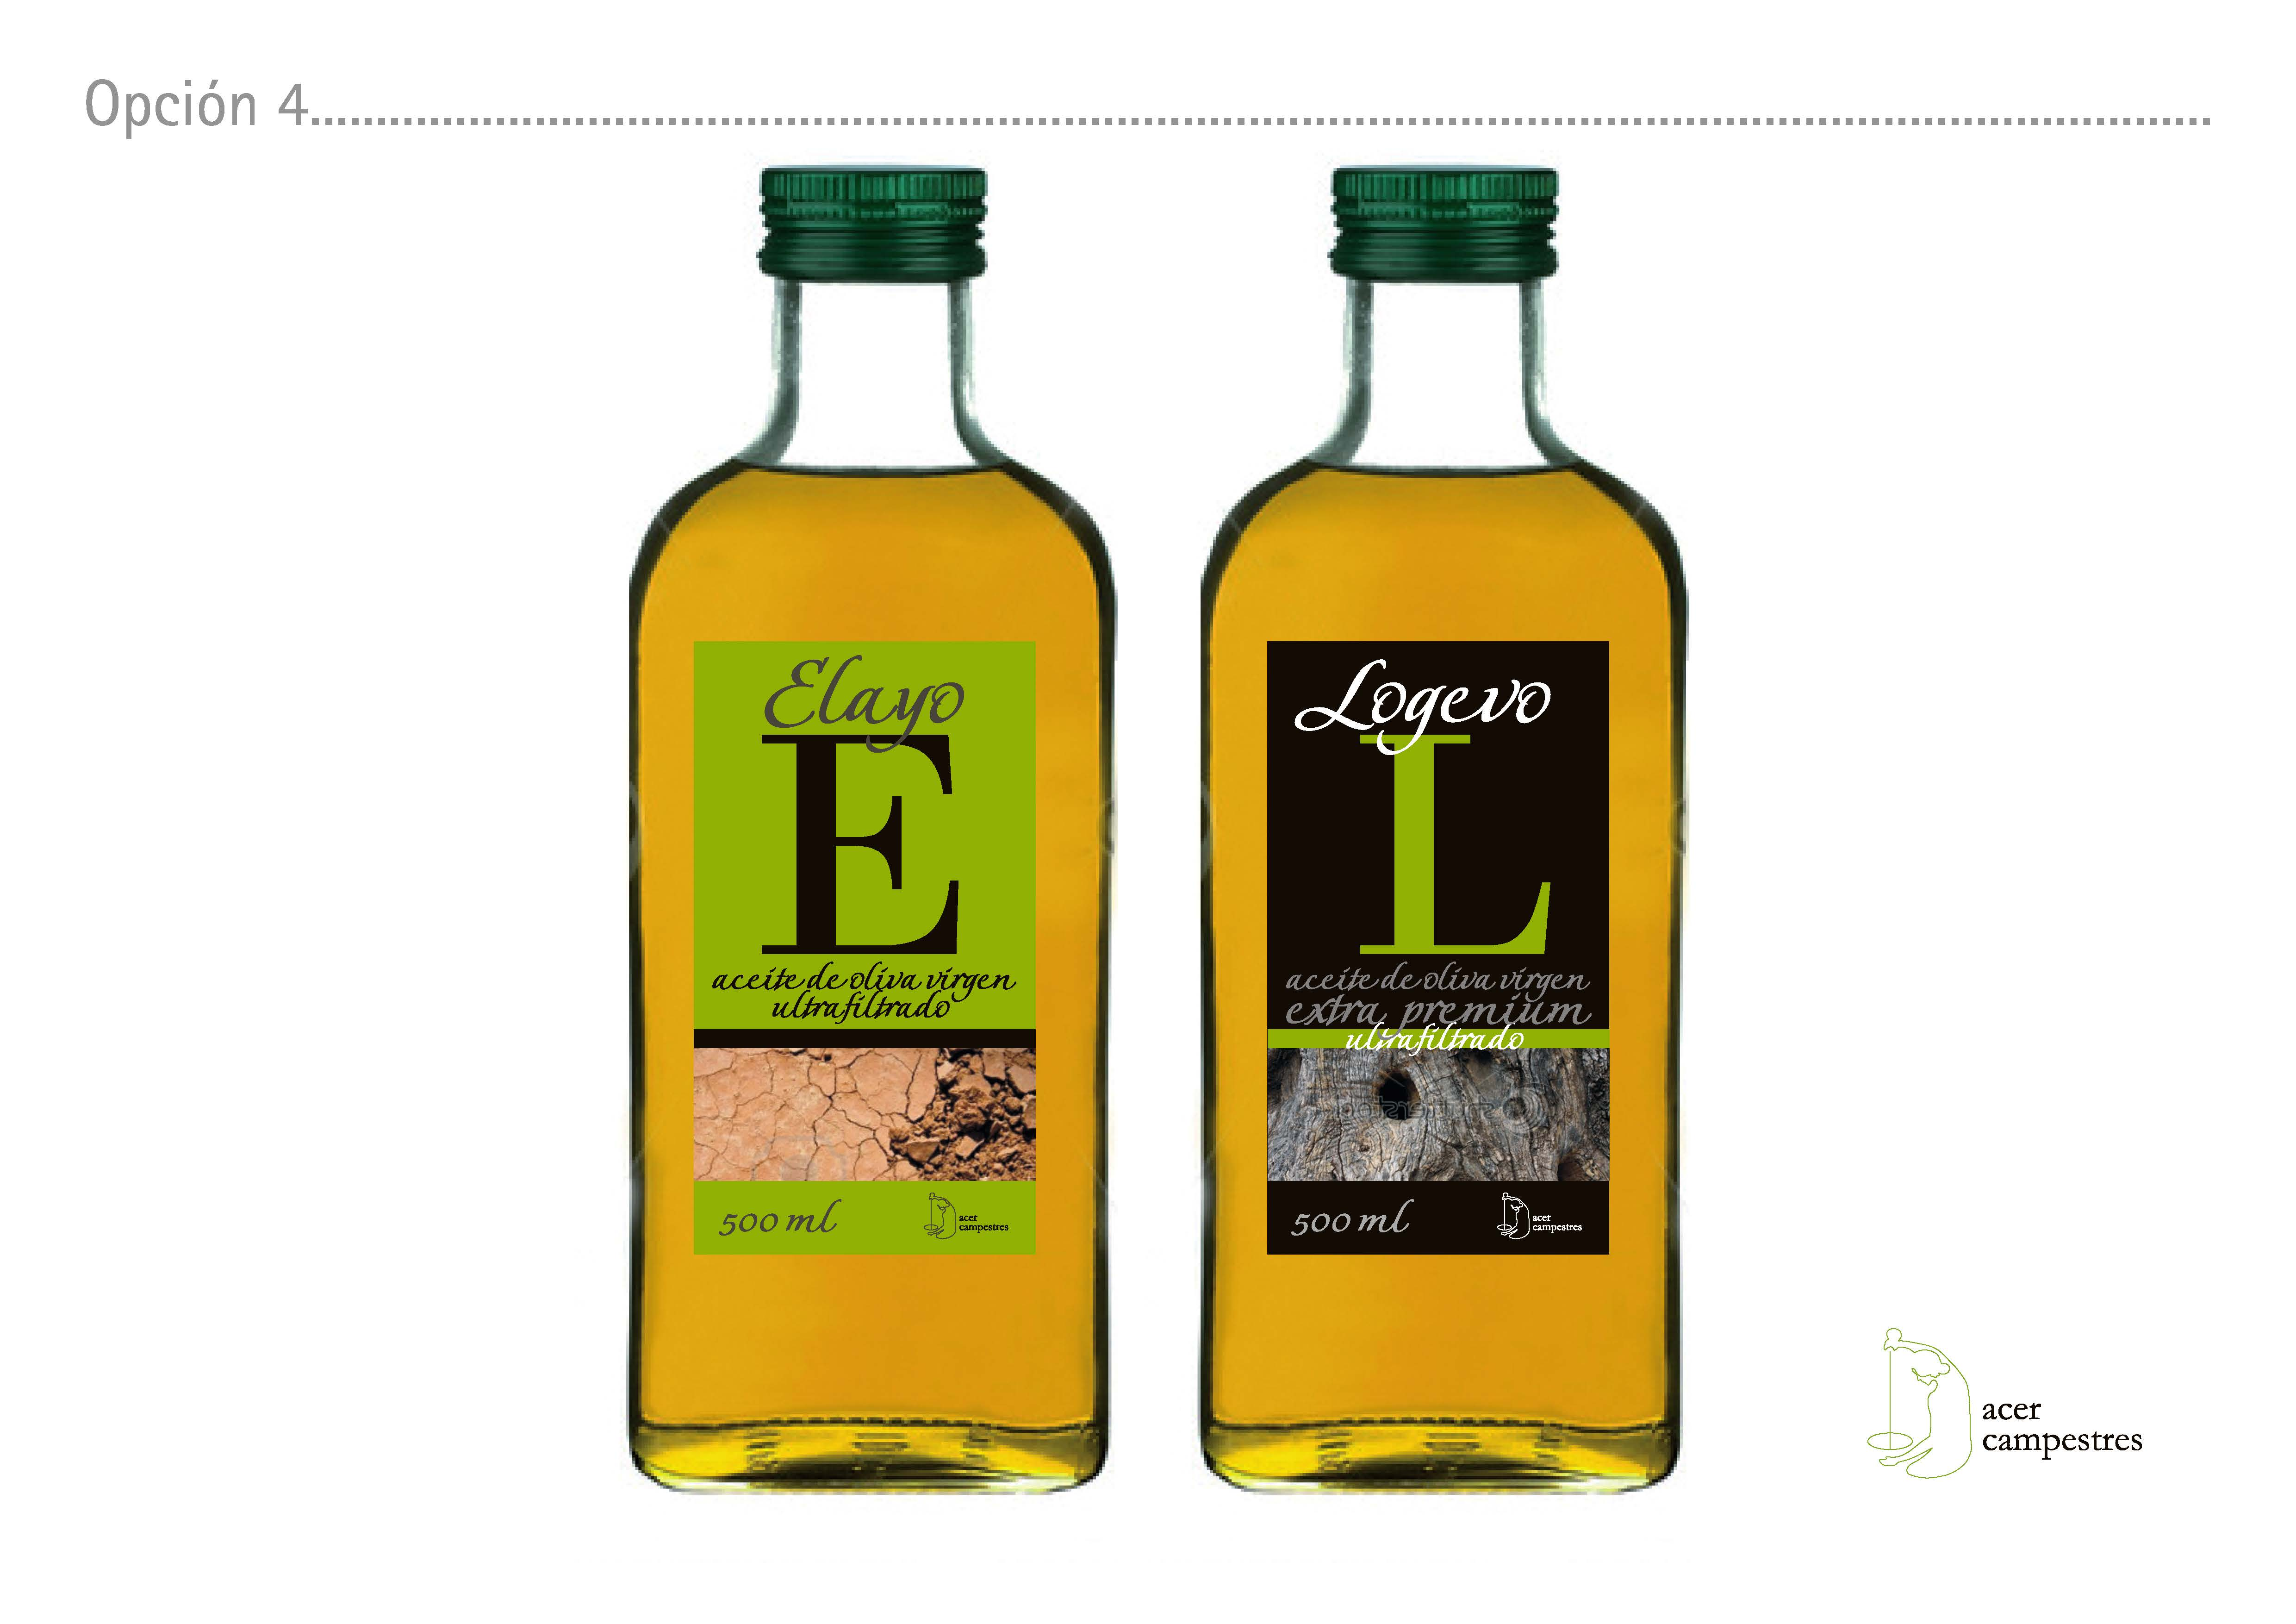 Packaging aceite ELAYO Y LONGEVO (4).jpg